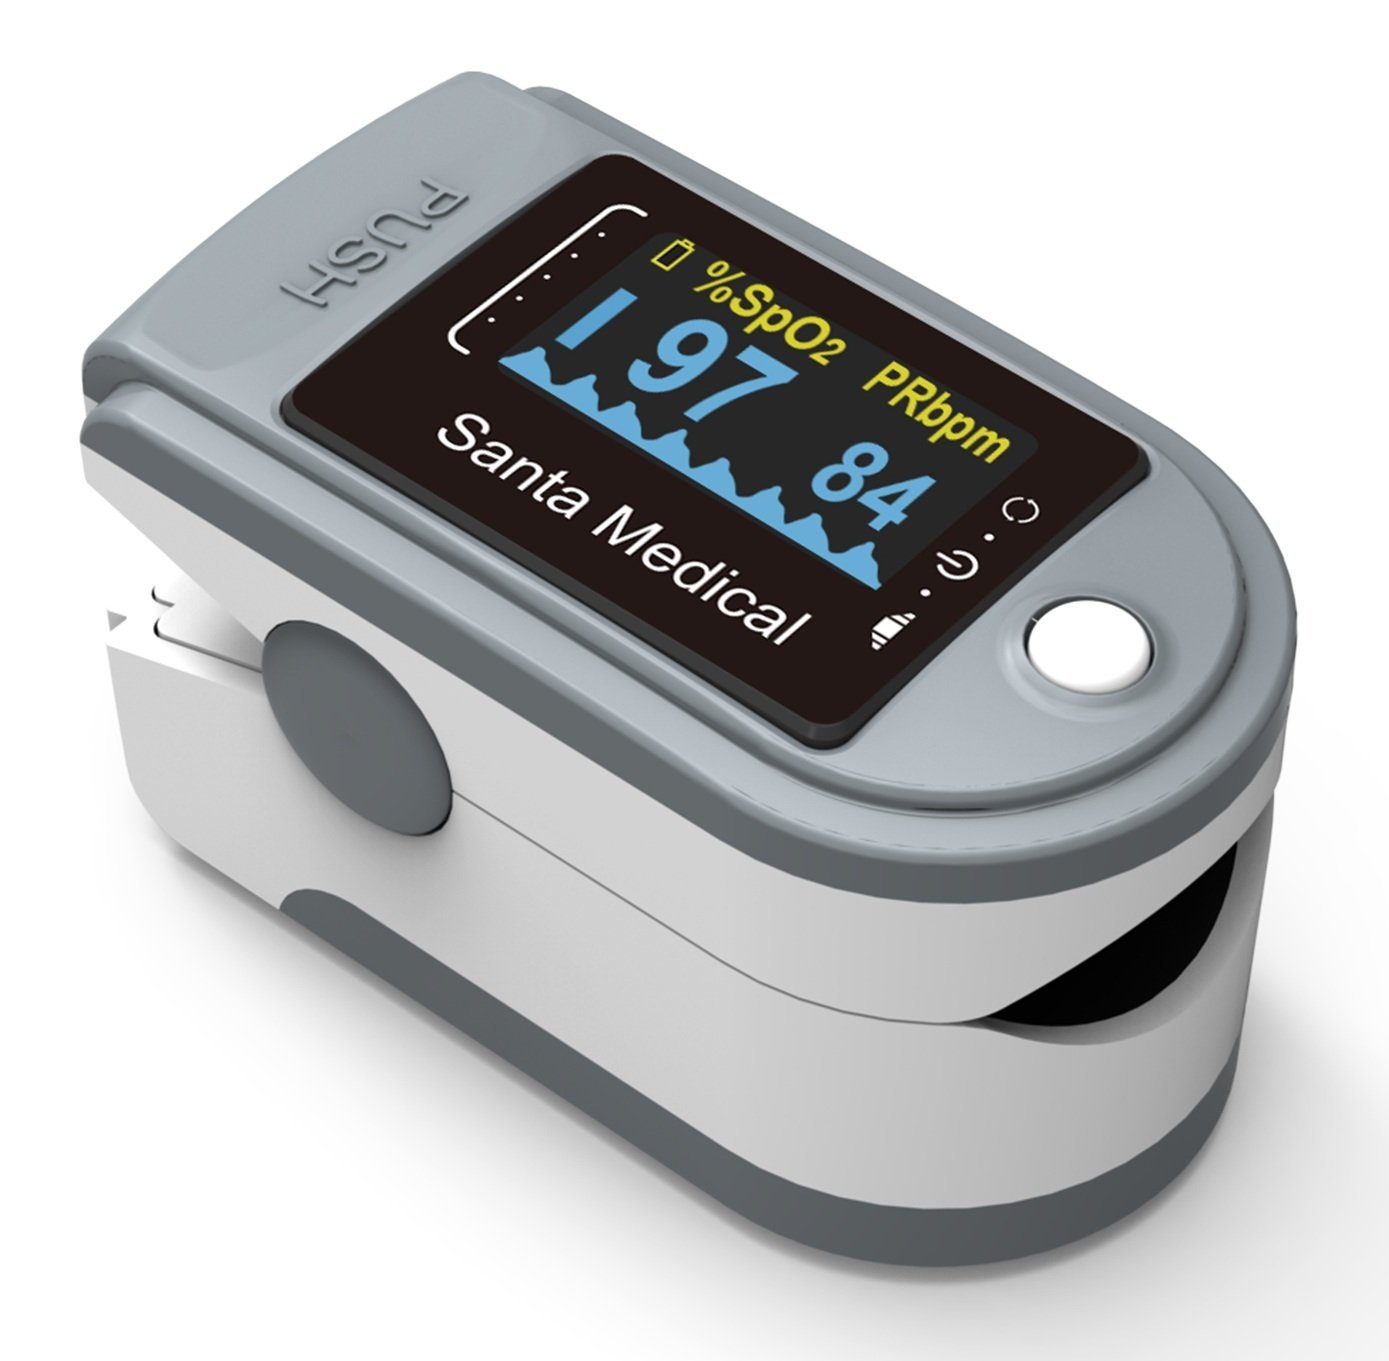 Santamedical Generation 2 SM-165 oxi Fingertip Pulse Oximeter